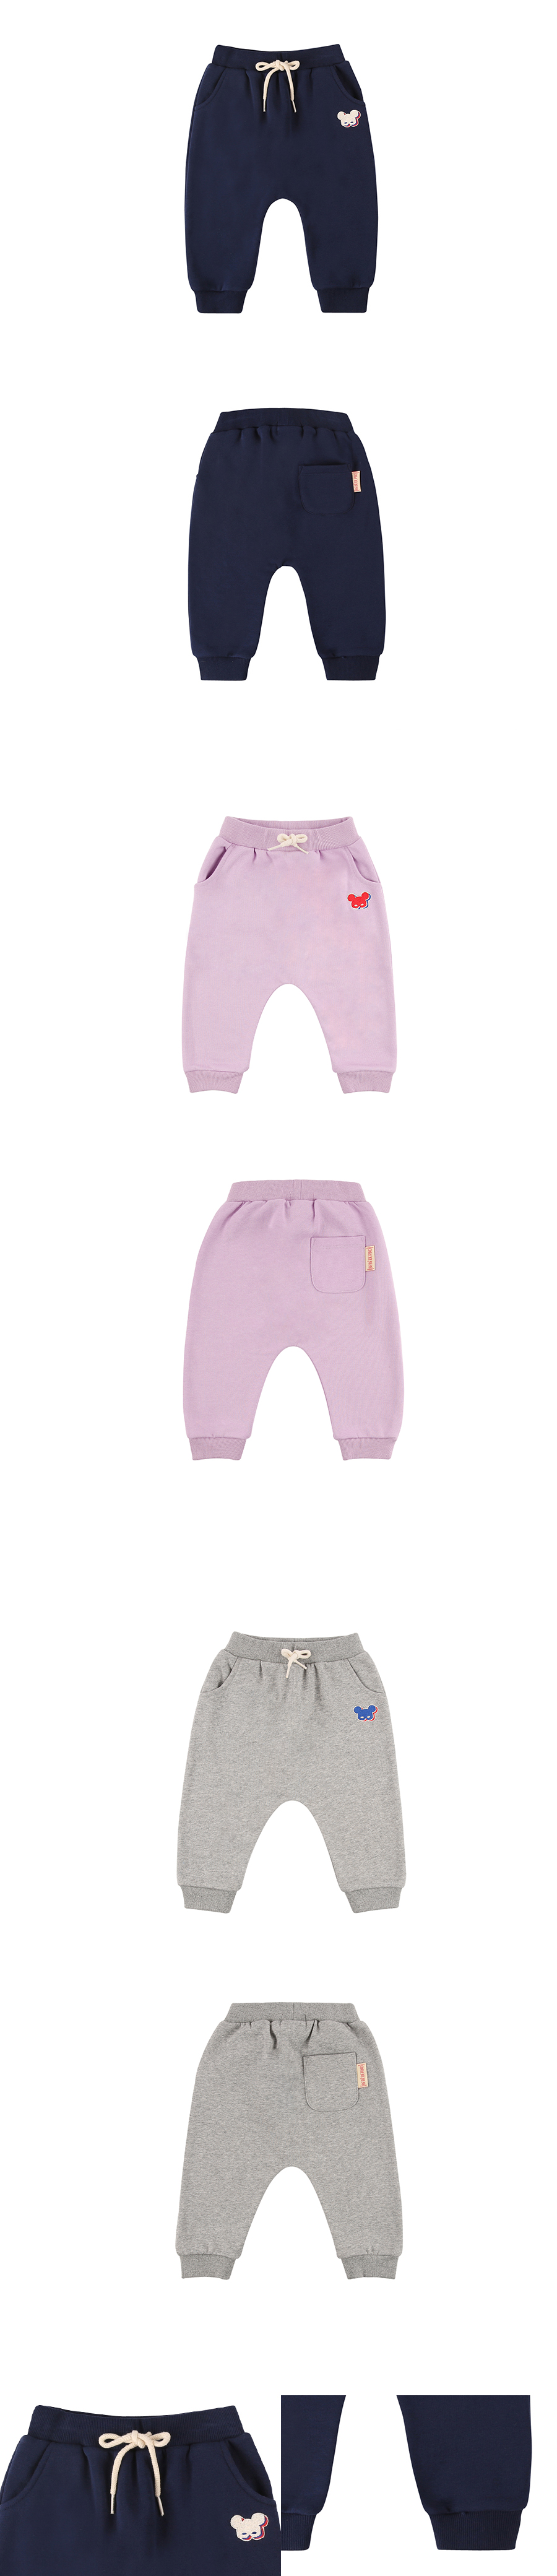 Basic baby shadow pino sweatpants 상세 이미지